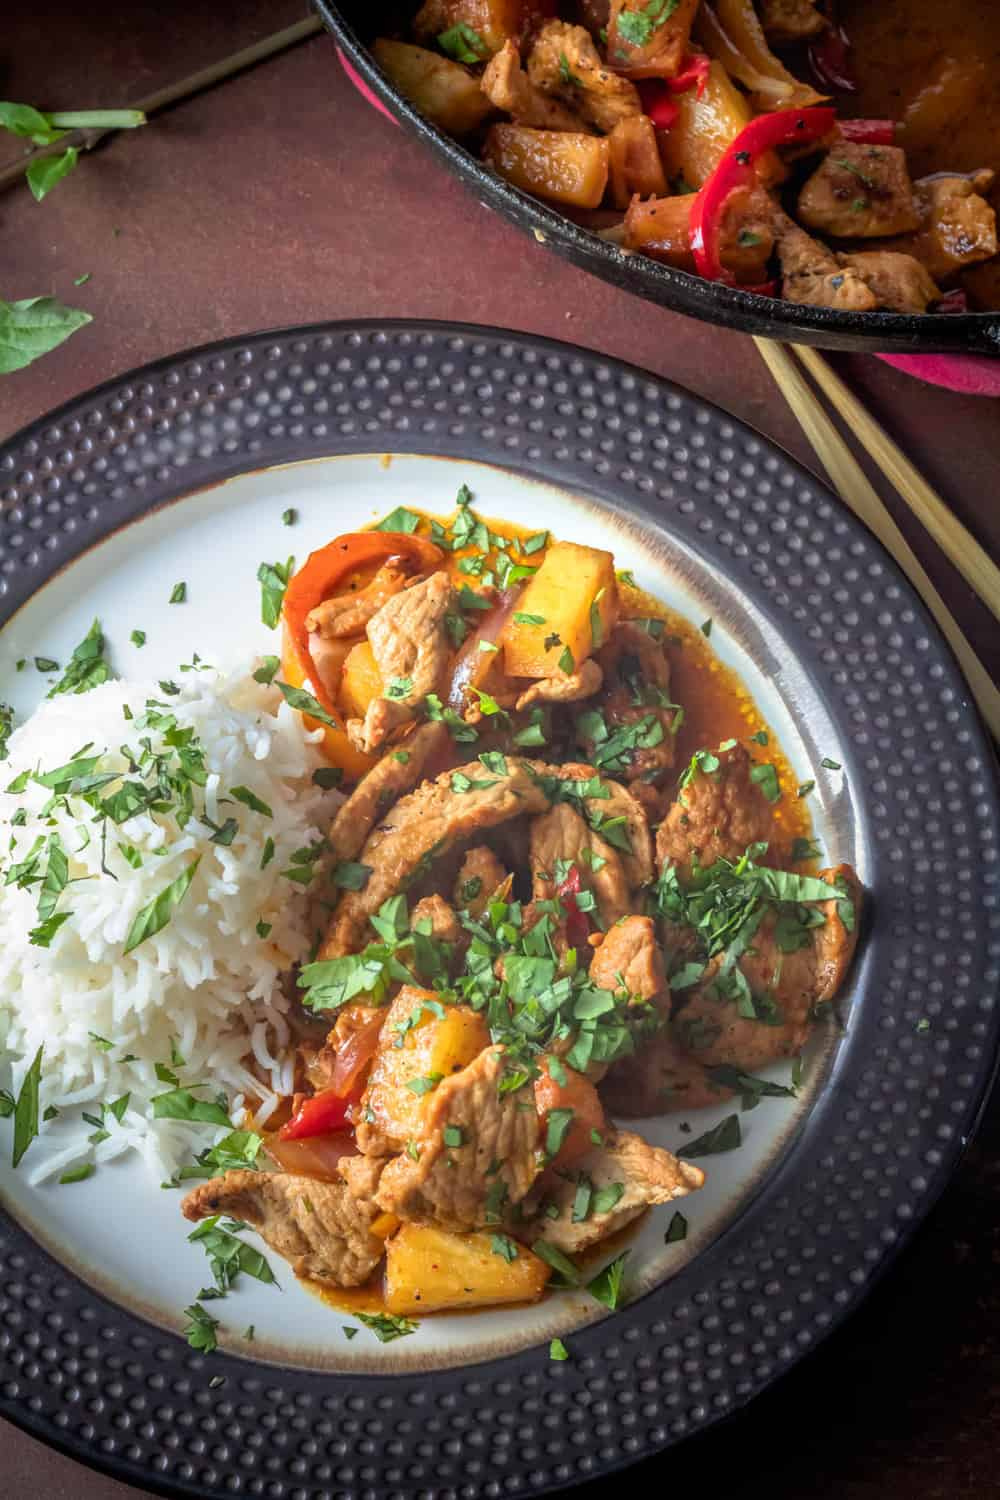 Thai Pork and Pineapple Curry  in a cast iron skillet, a bowl of rice, and a plate of curry and rice garnished with cilantro.